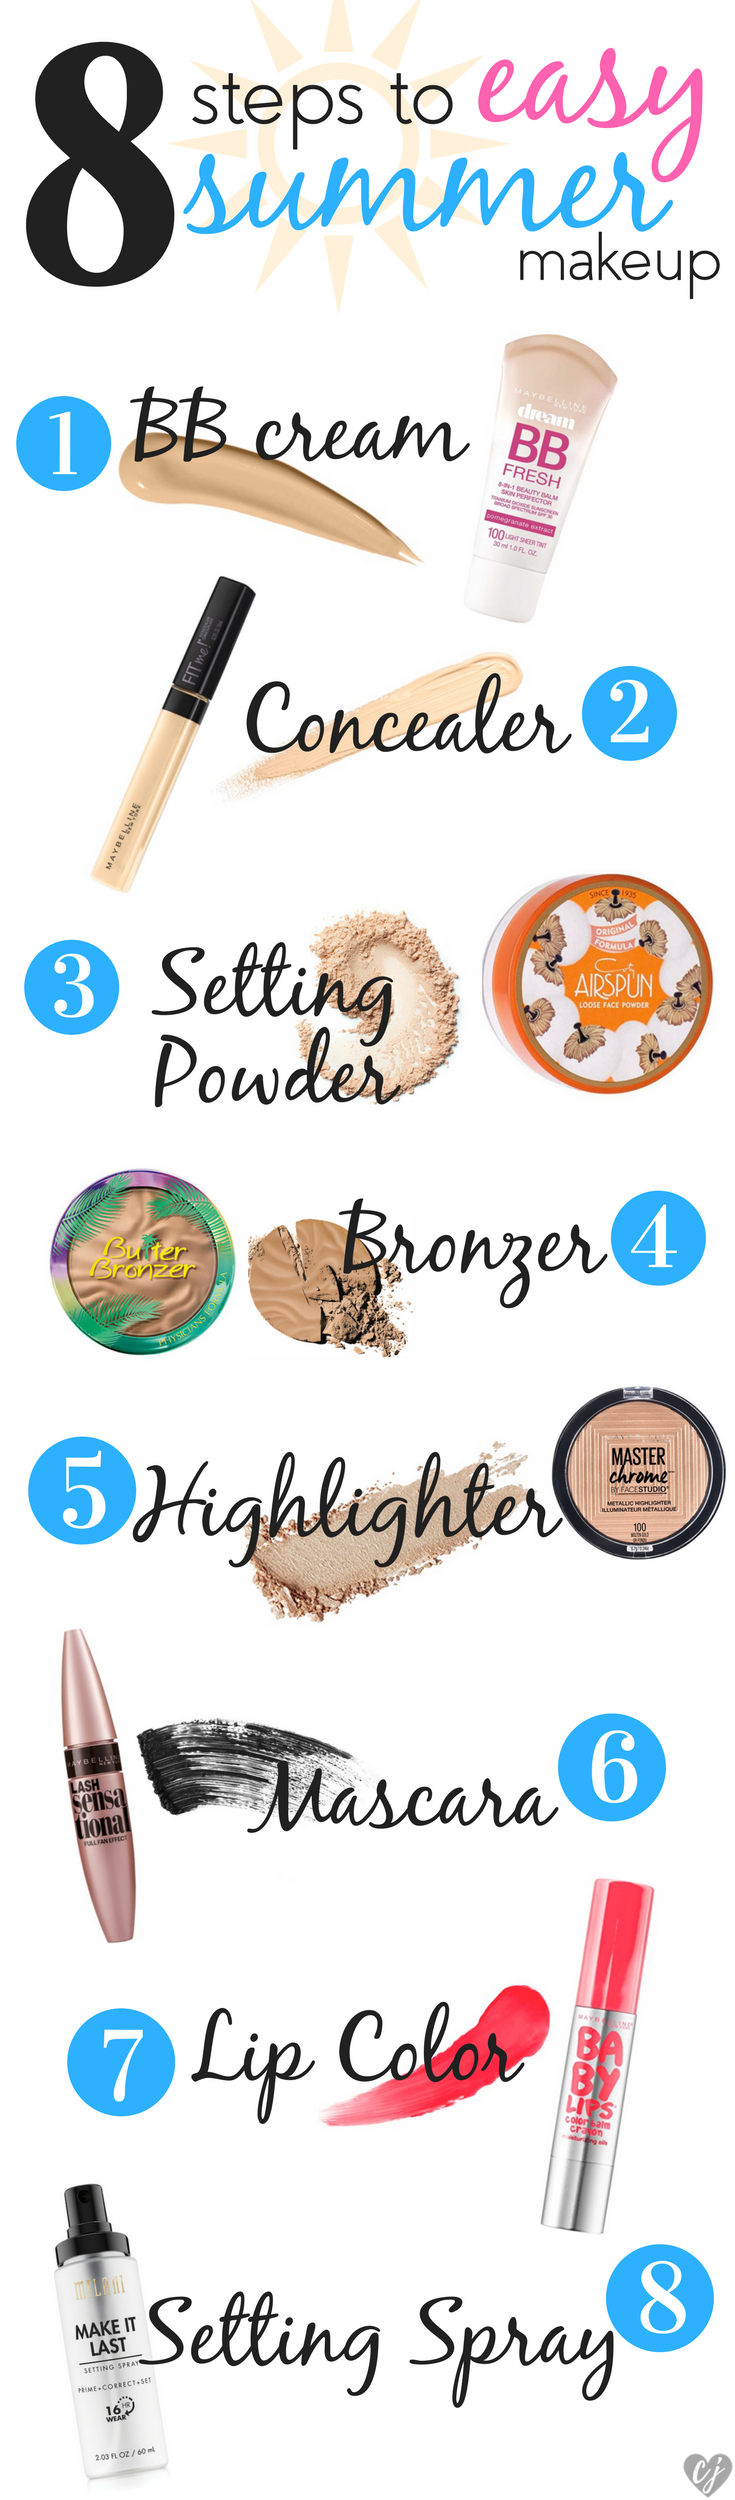 8 steps easy summer makeup